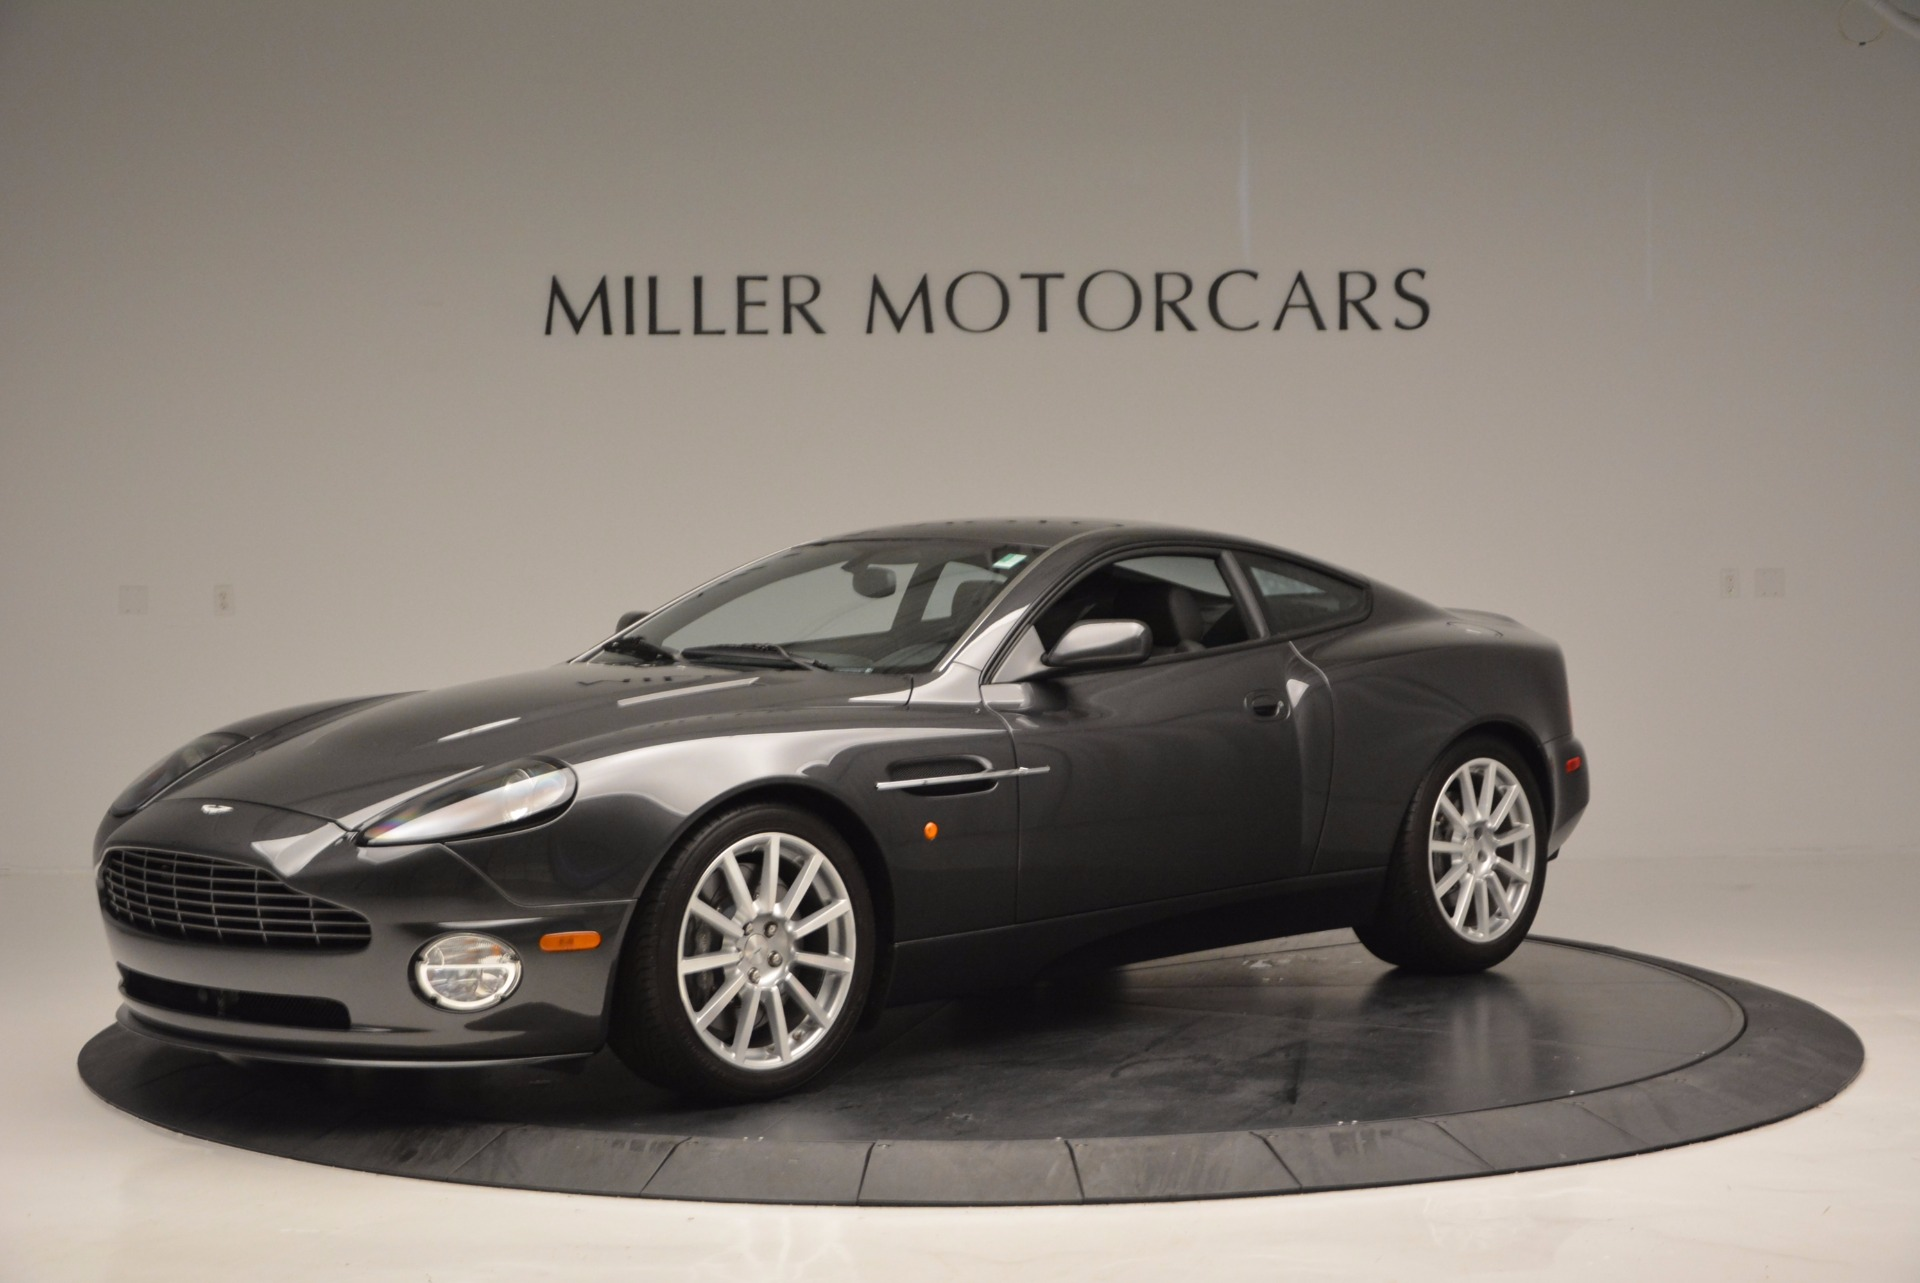 Used 2005 Aston Martin V12 Vanquish S For Sale In Westport, CT 645_p2